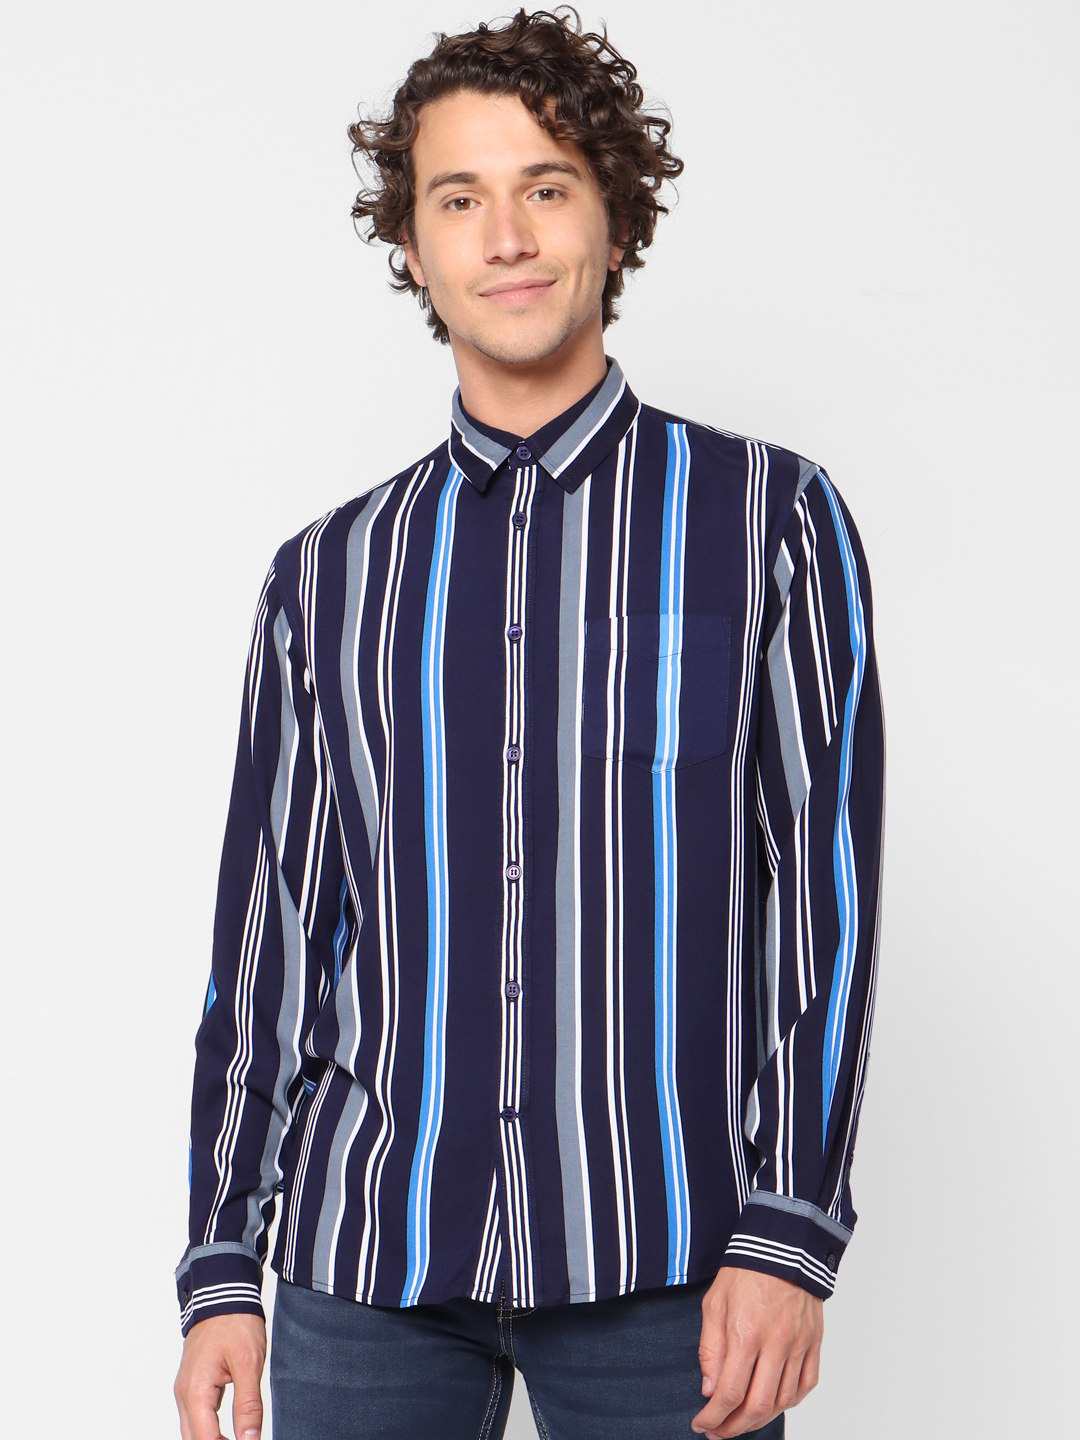 celio   Regular Fit  Soft Touch  Shirts